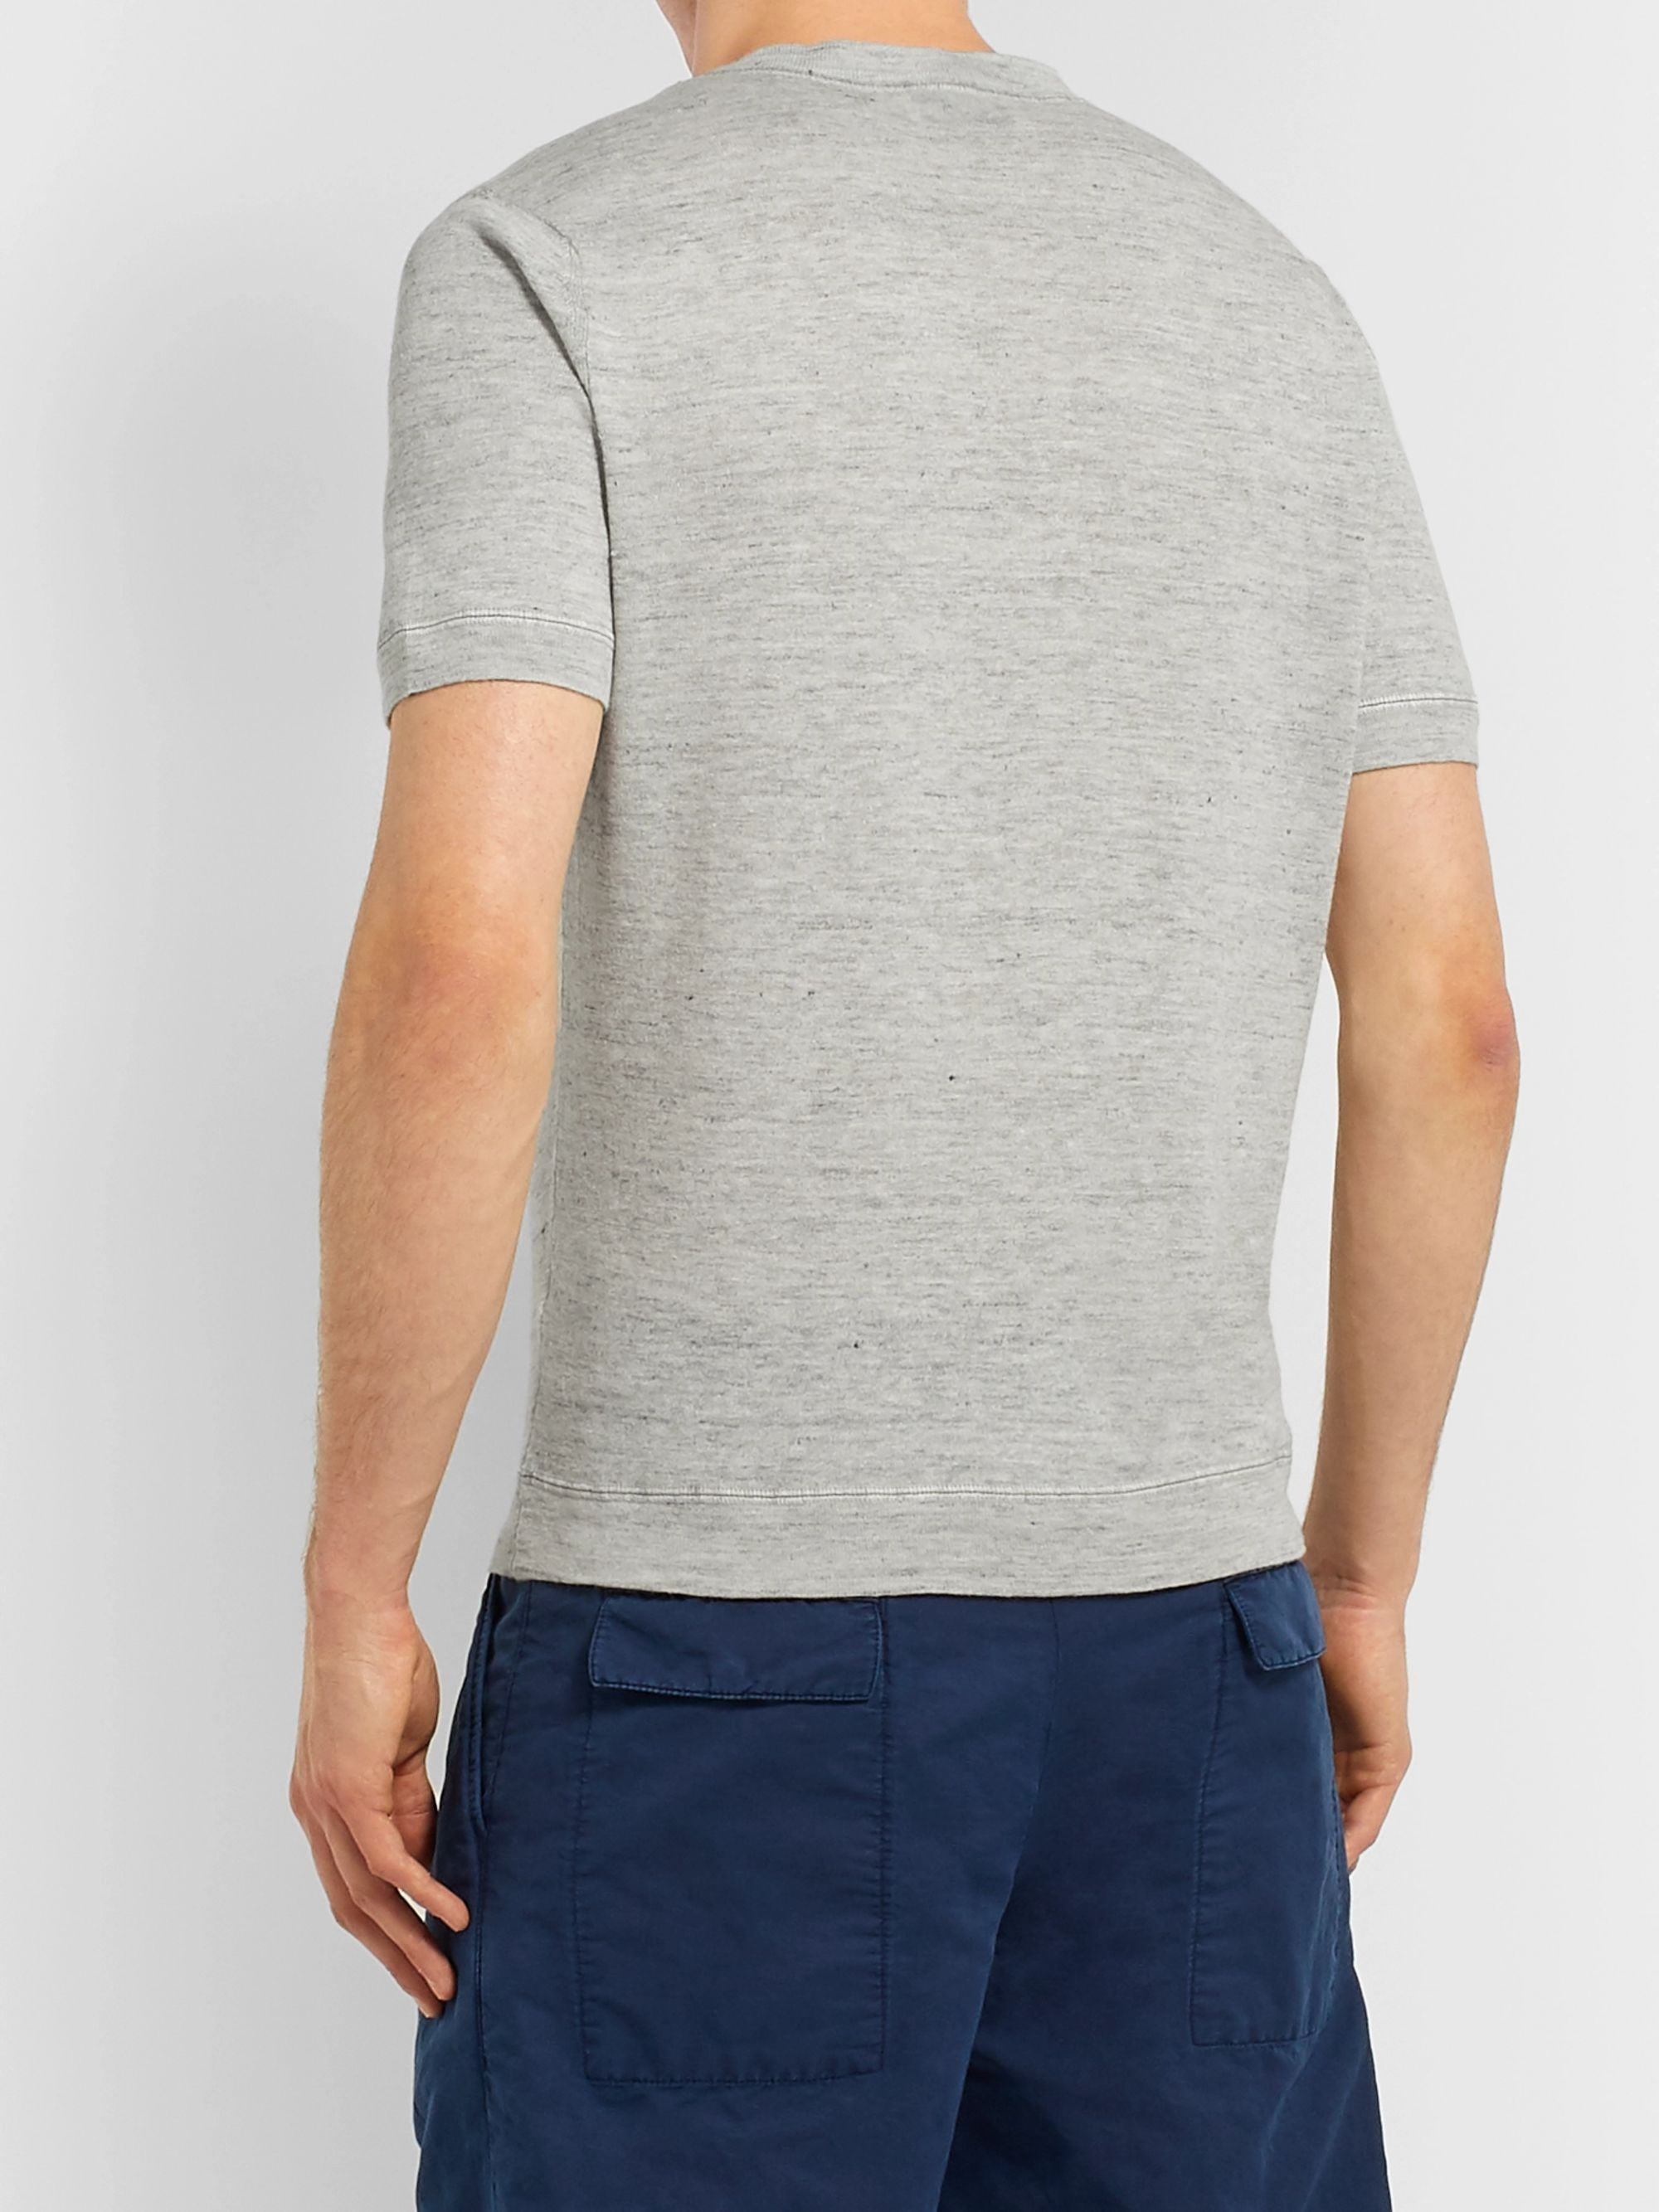 Brunello Cucinelli Slim-Fit Mélange Slub Linen and Cotton-Blend T-Shirt